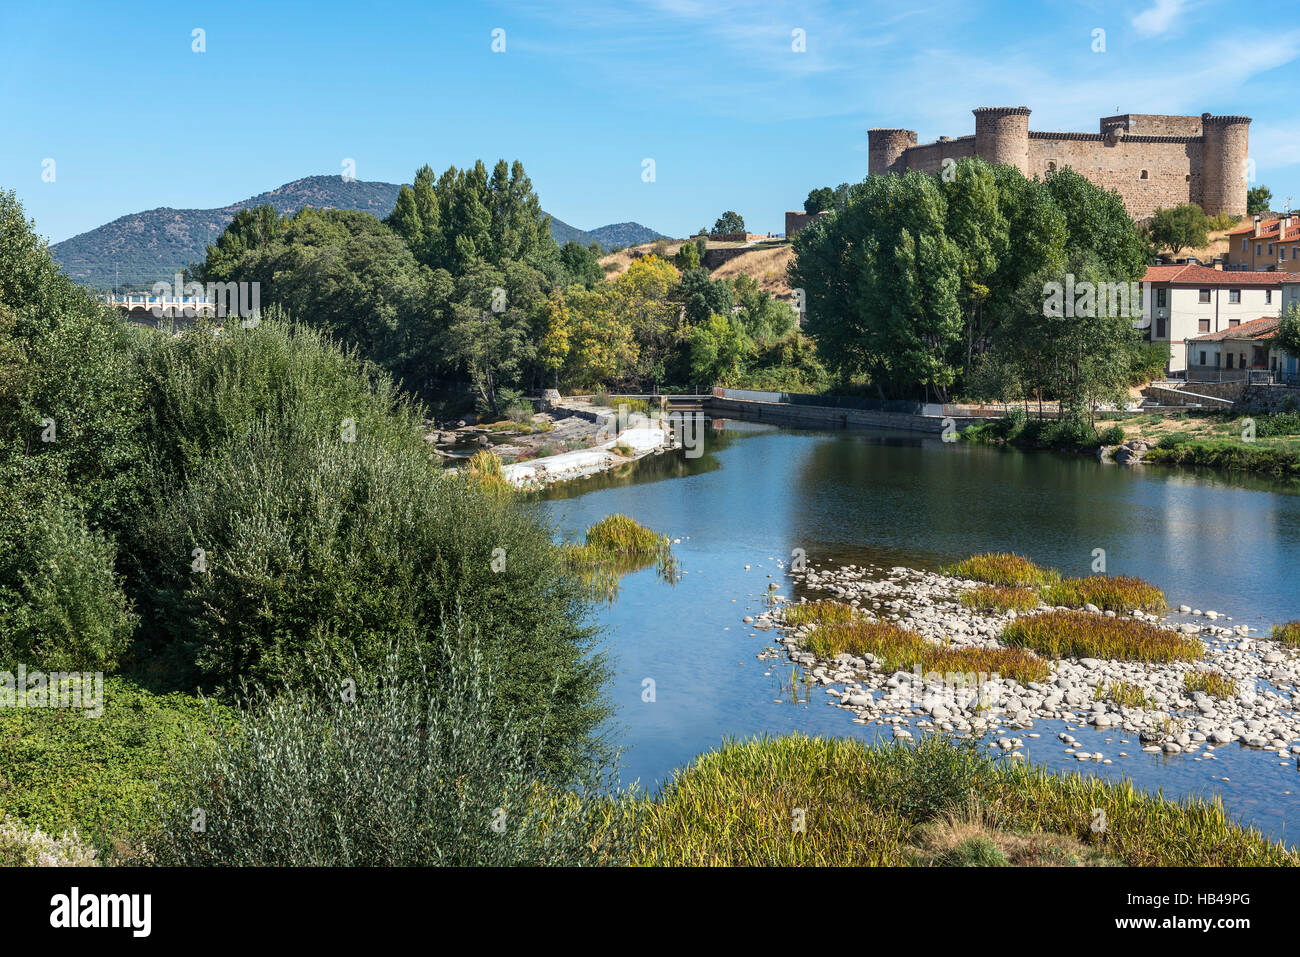 Looking across the River Tormes with the castle in the background, El Barco De Avila, Avila Province, Spain. Stock Photo